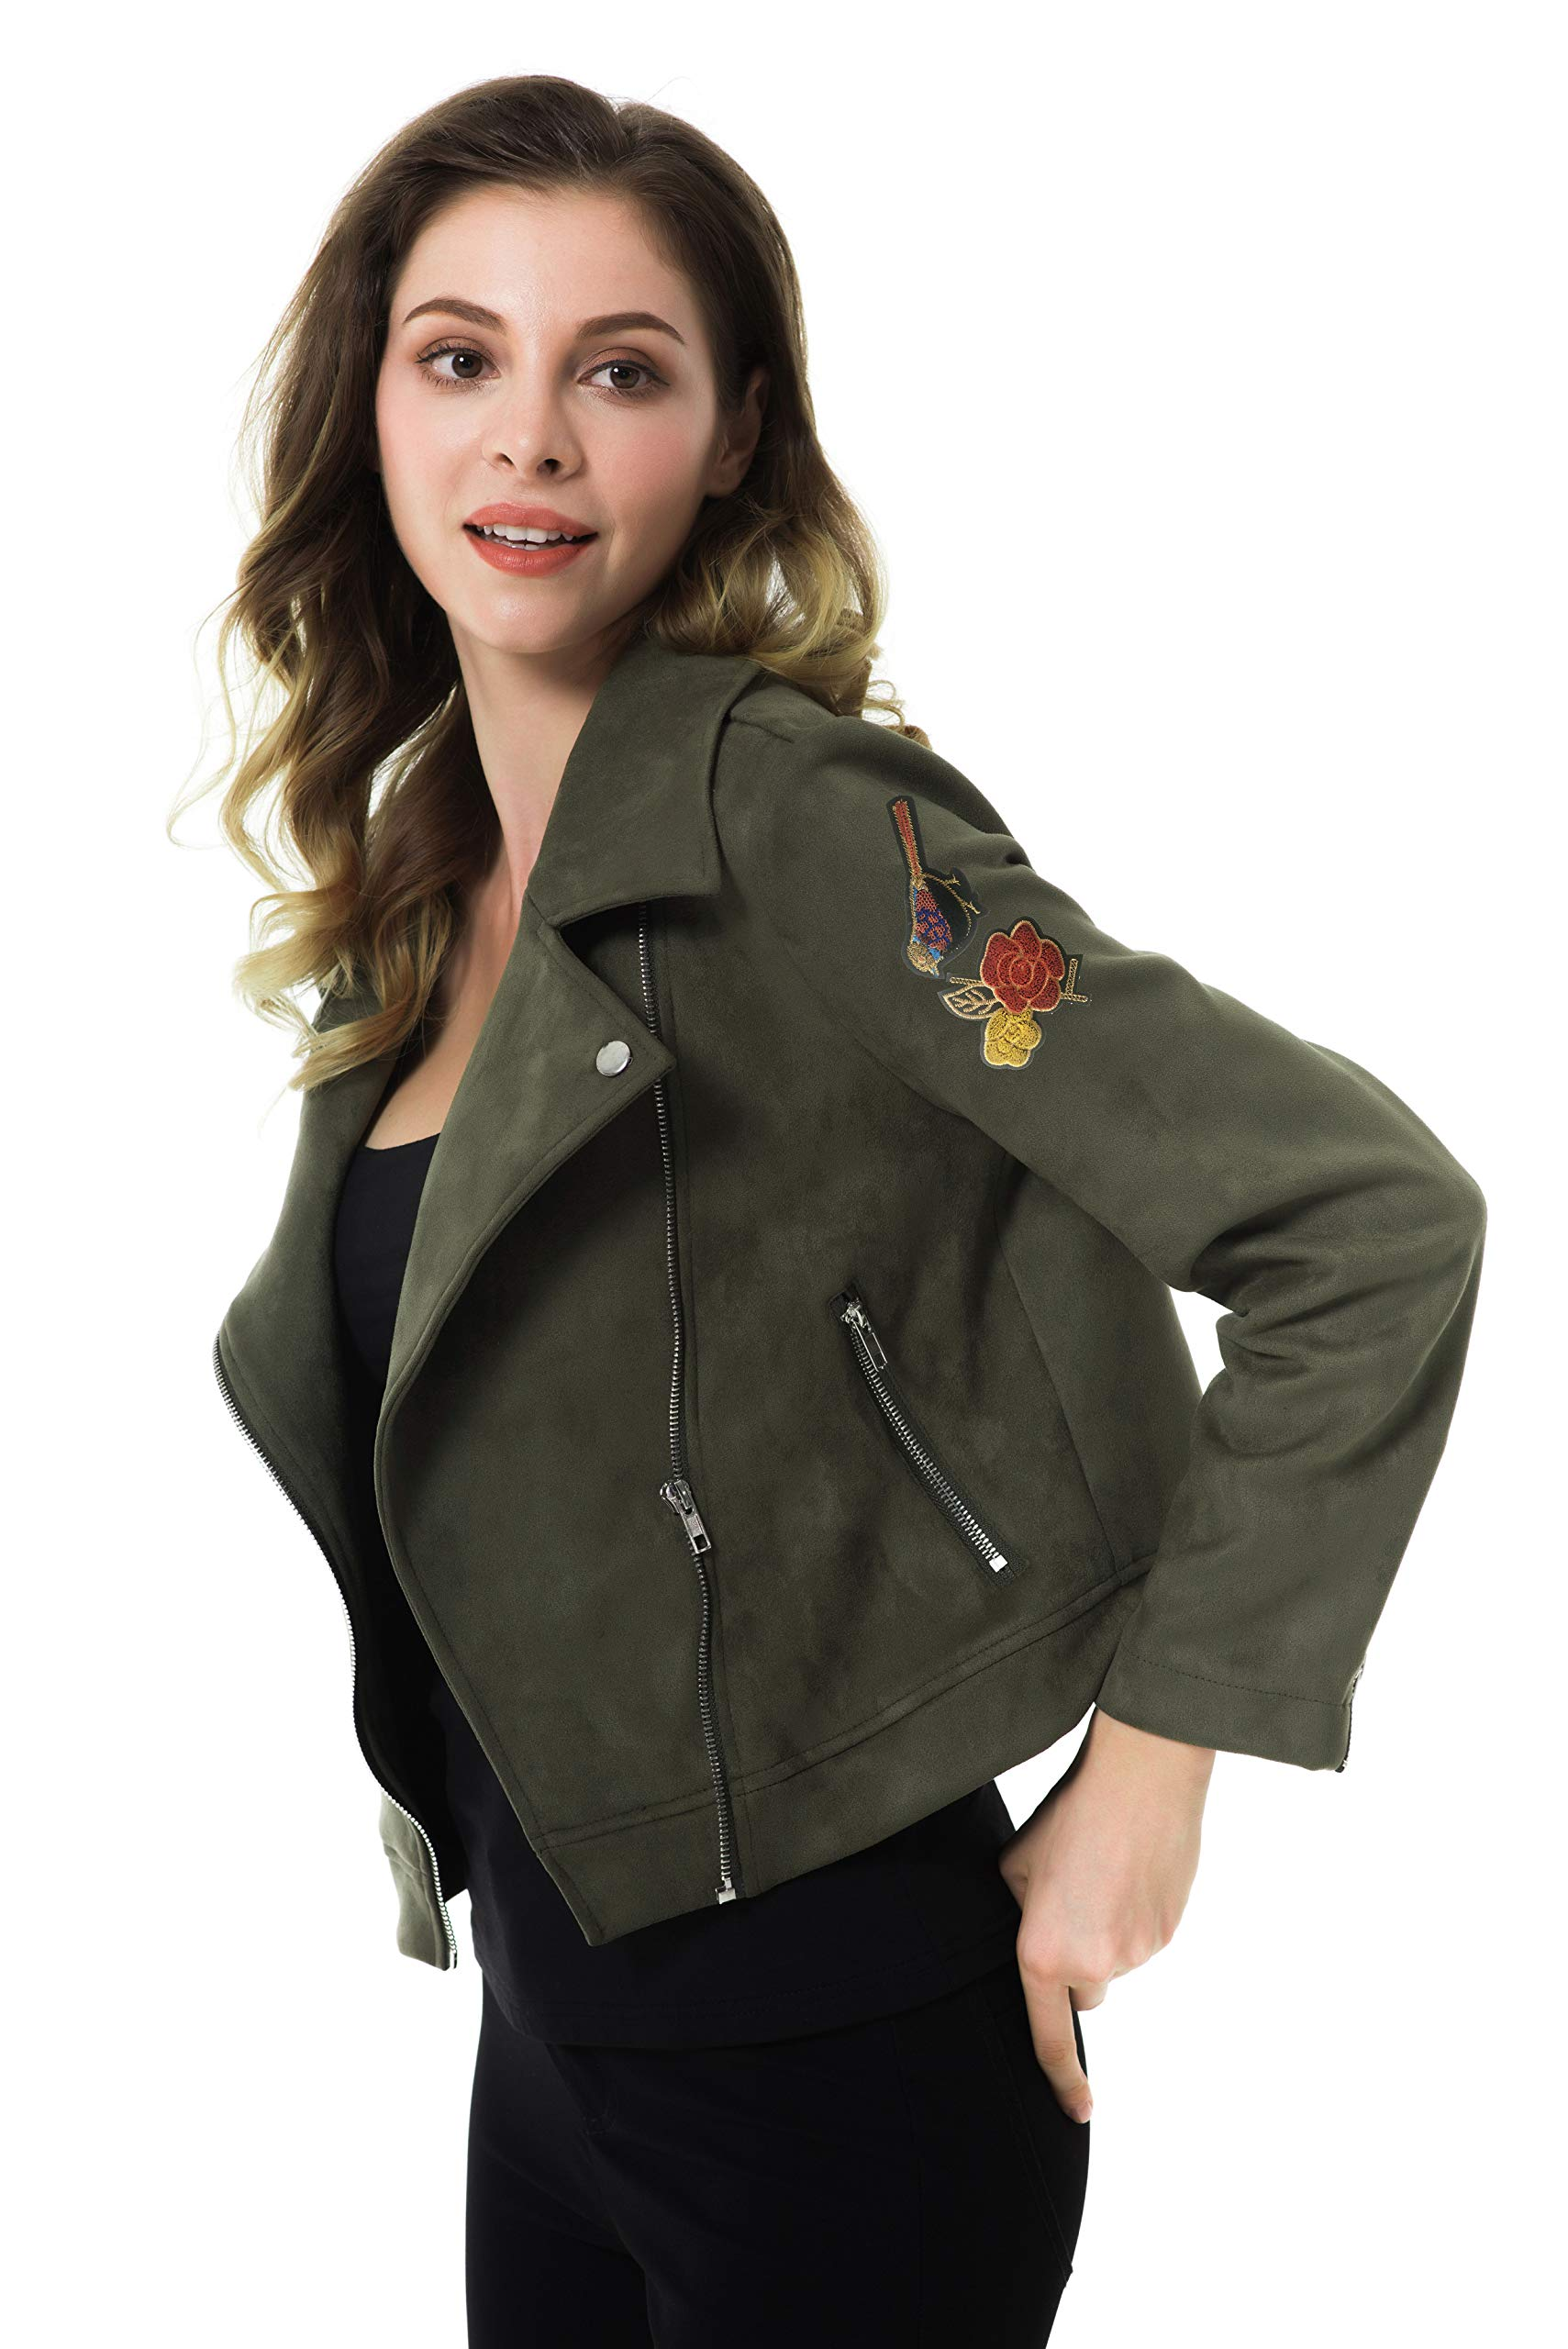 Apperloth Floral Print Faux Suede Jackets Long Sleeve Zipper Army Green Black Coat for Women